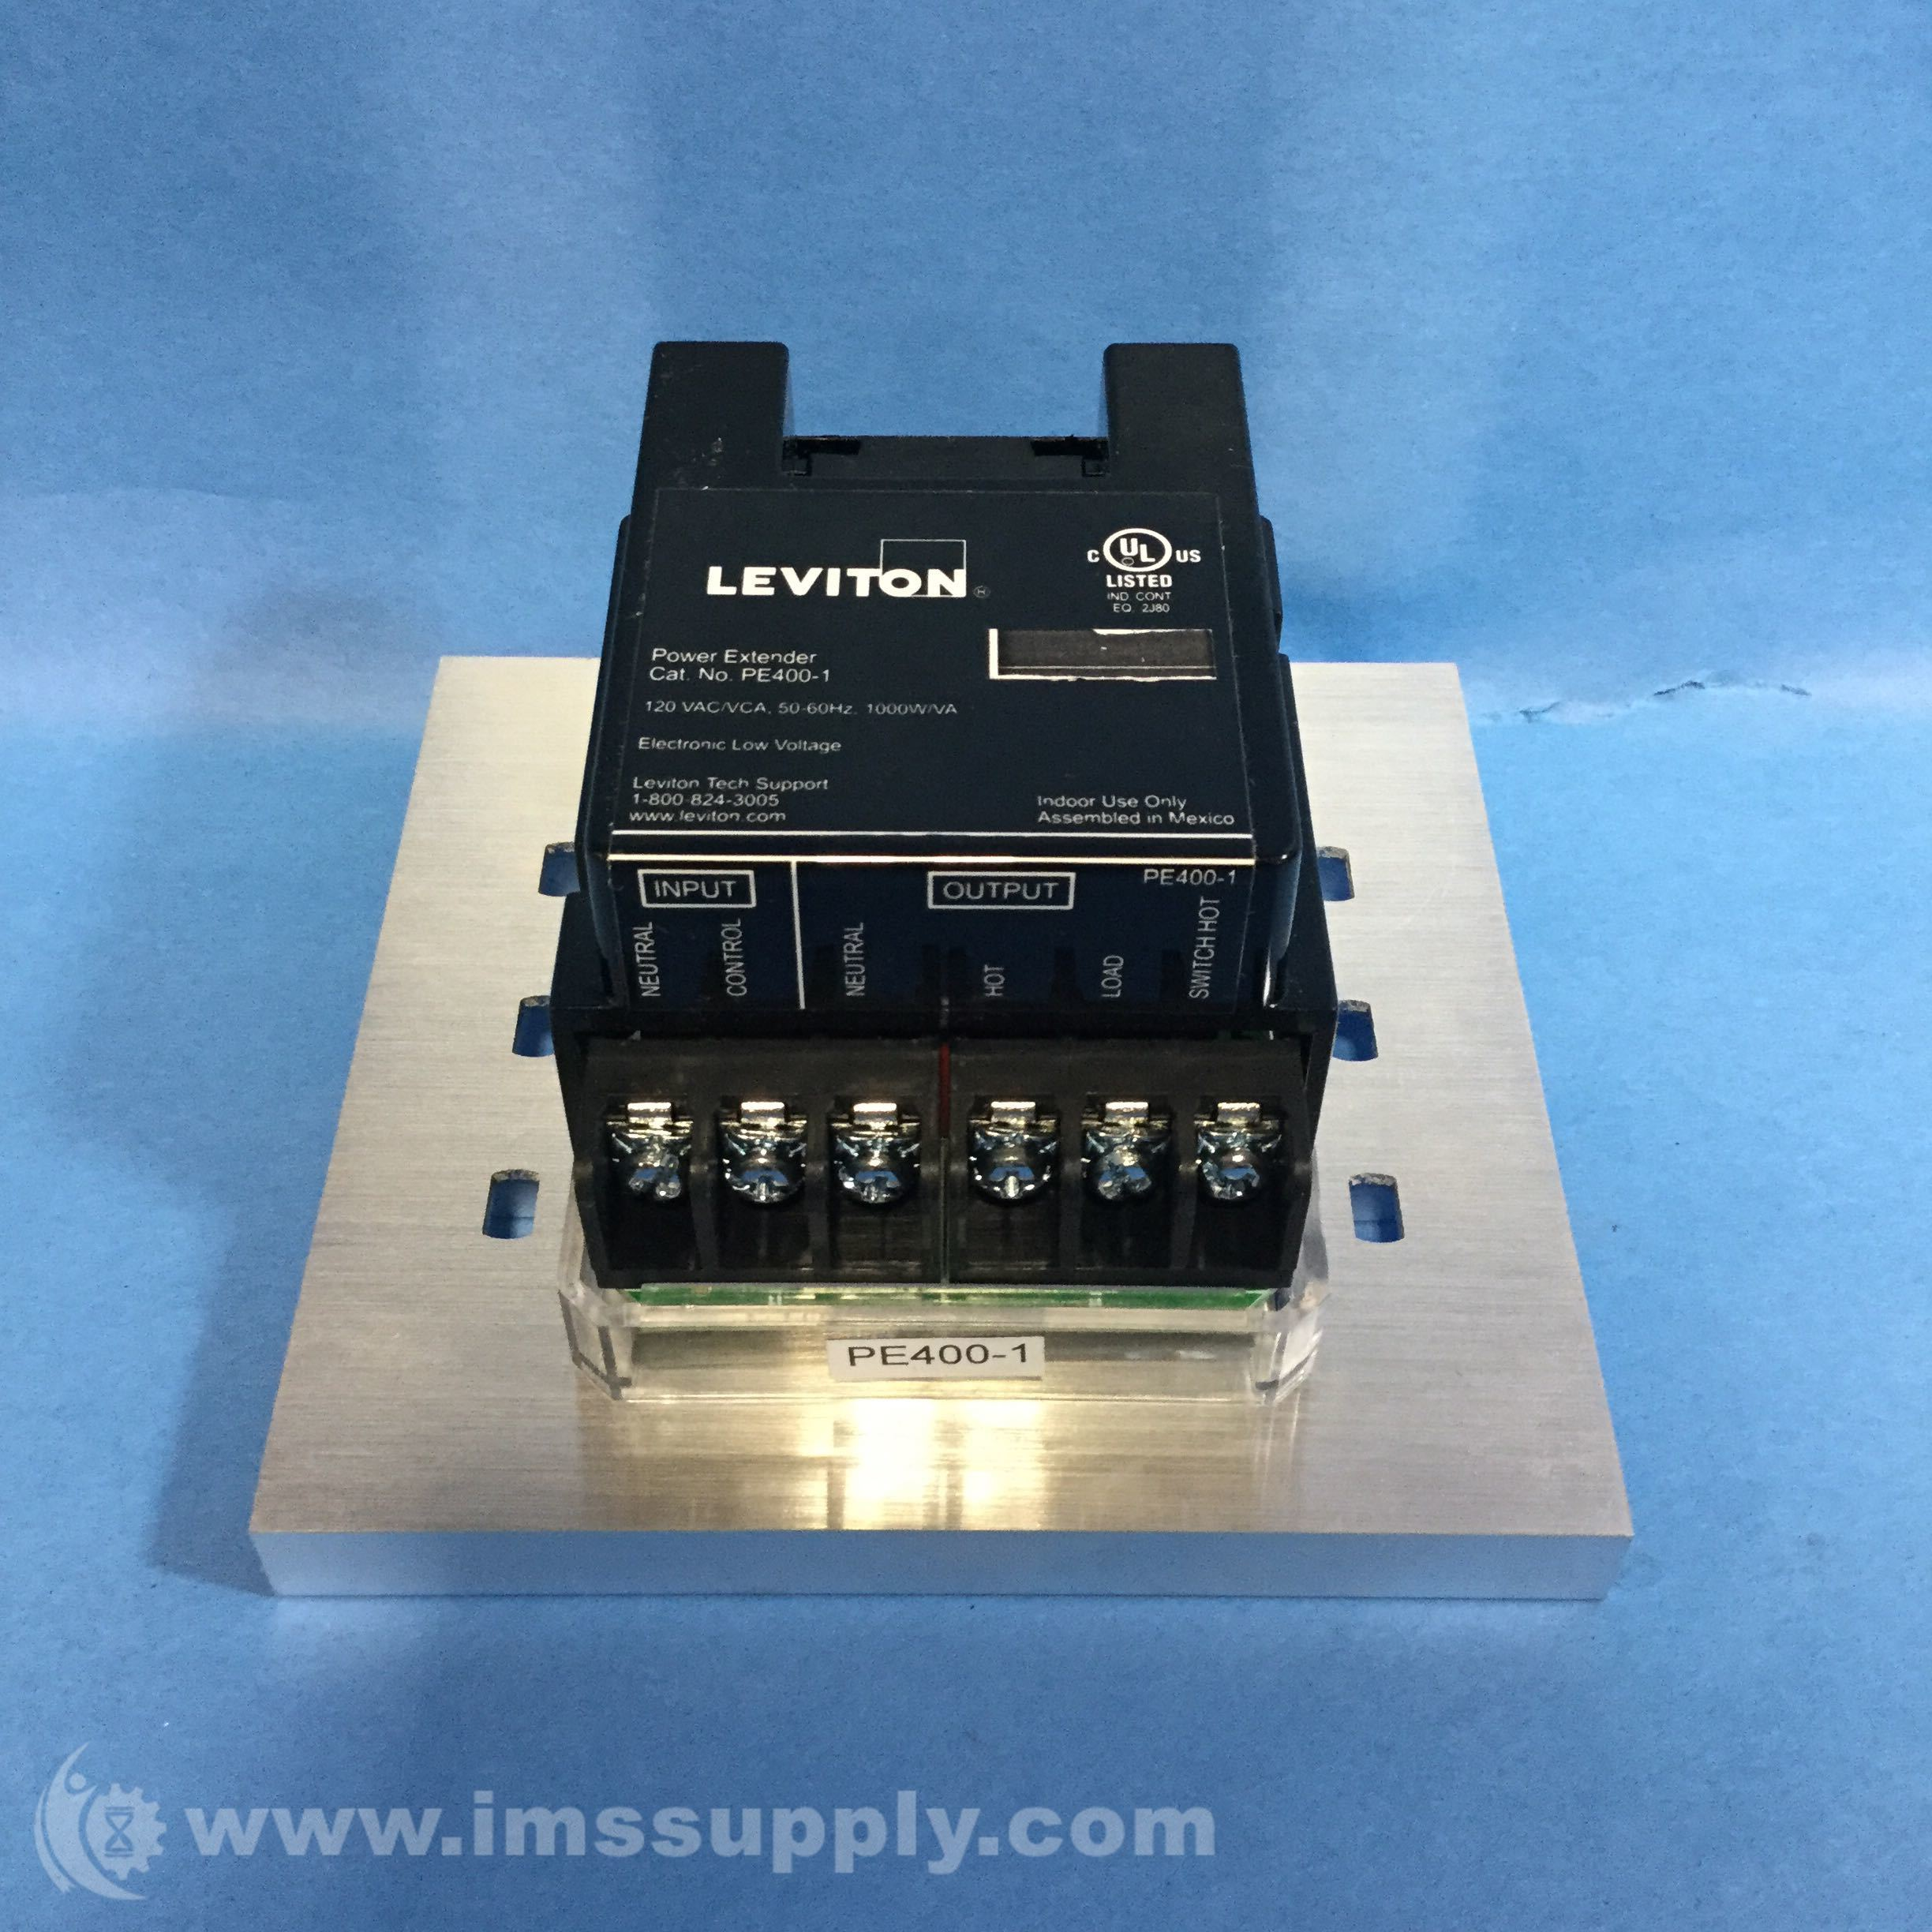 Leviton PE400-10W Power Extender - IMS Supply